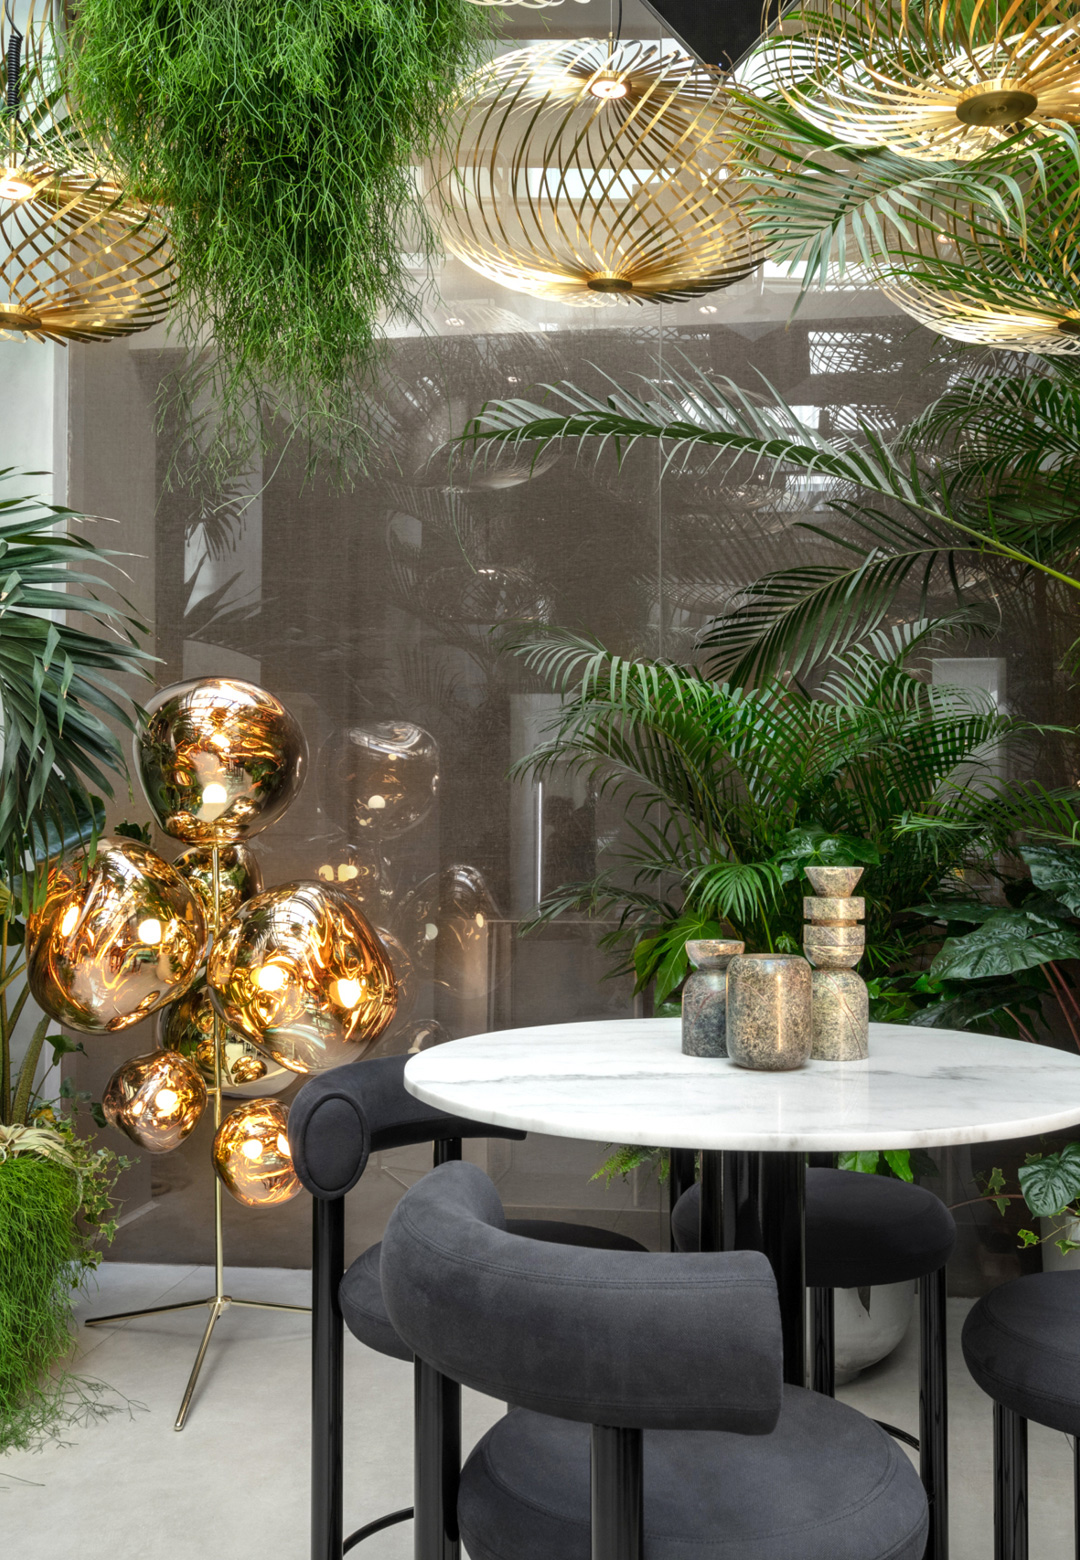 The Jungle room created by Art Flowers Gallery - here Spring pendants in brass hang down from the ceiling and Fat high stools are kept around a marble table| The Manzoni| Design Research Studio| Tom Dixon| STIR